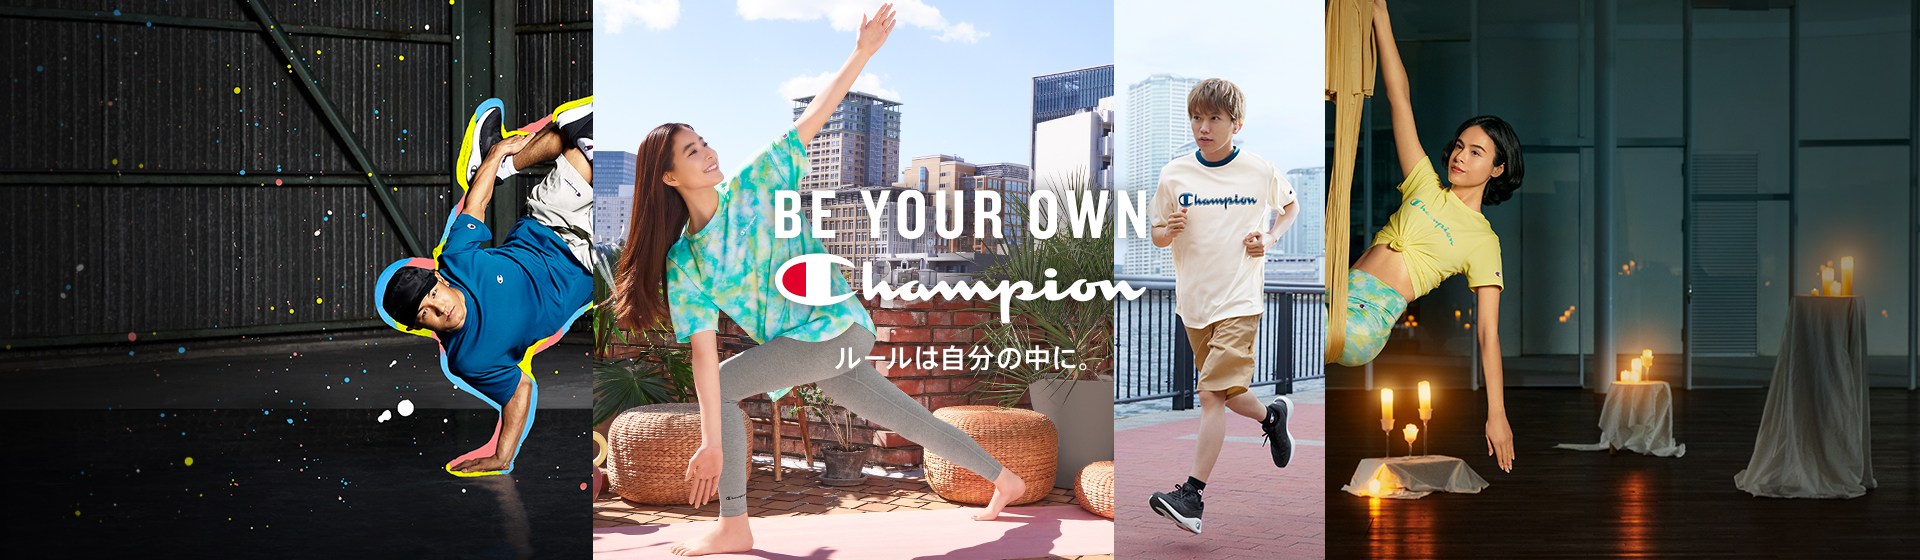 BE YOUR OWN Champion